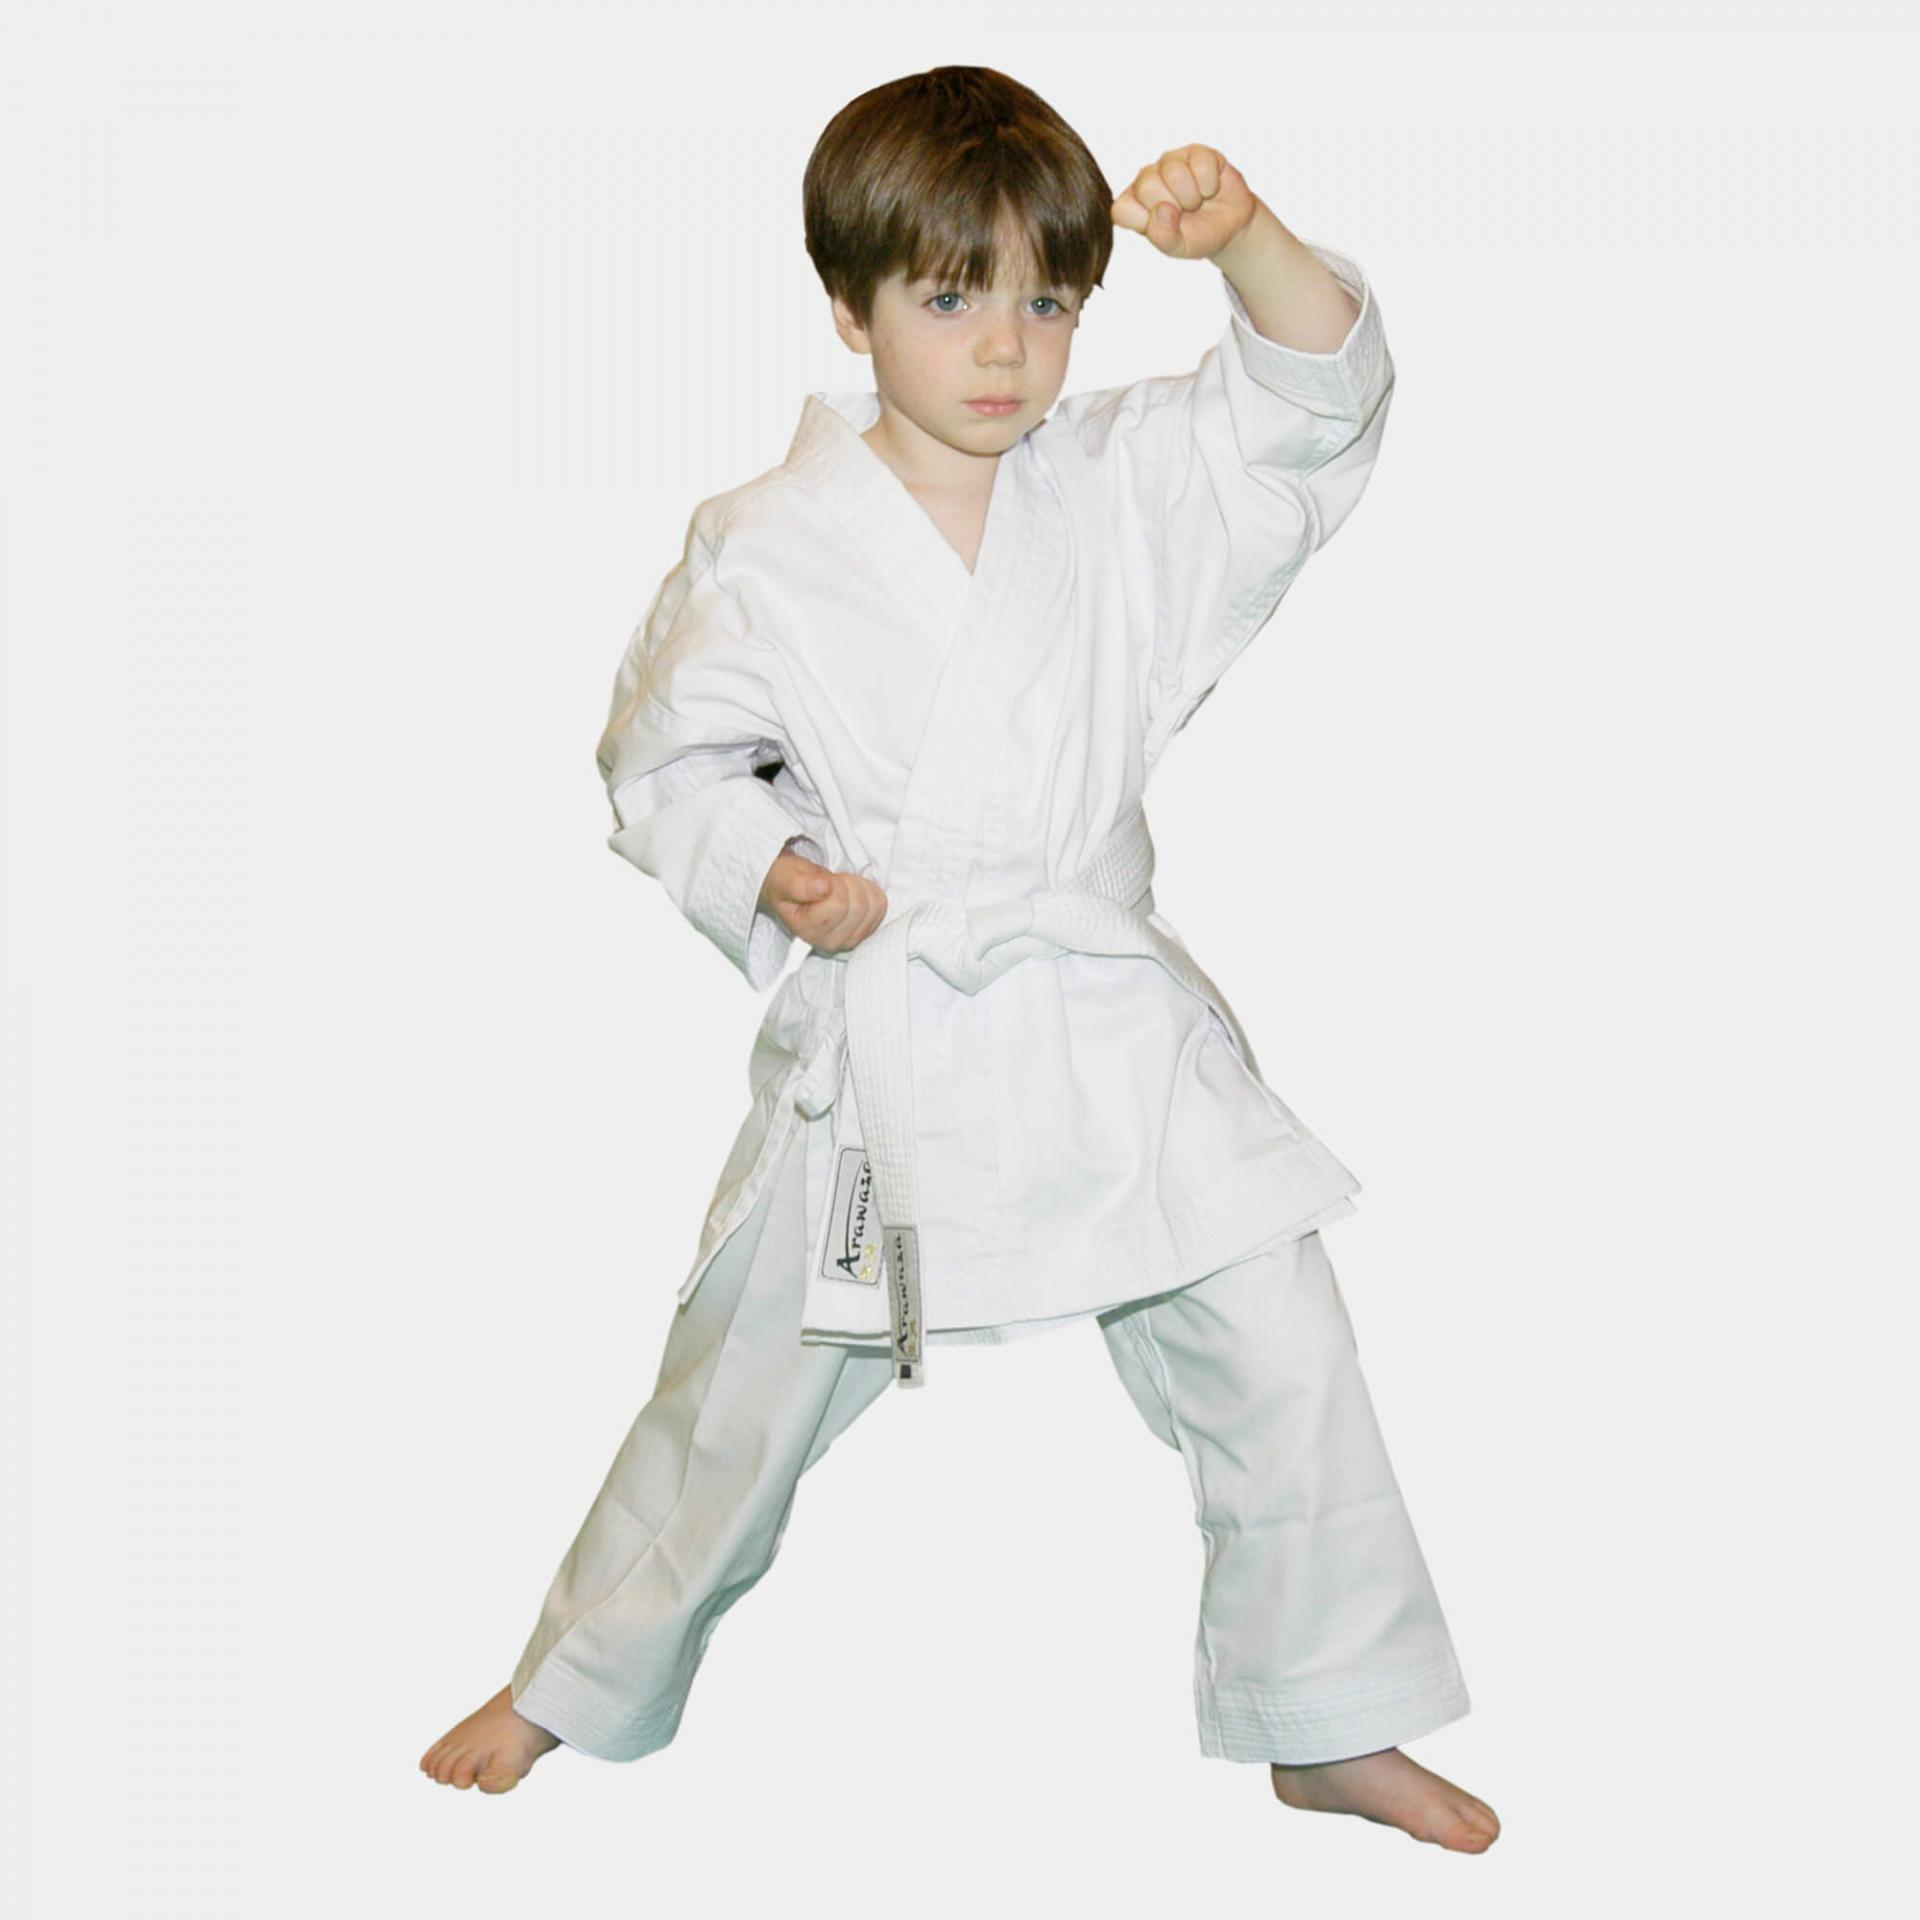 Uniform lightweight beginner white arawaza